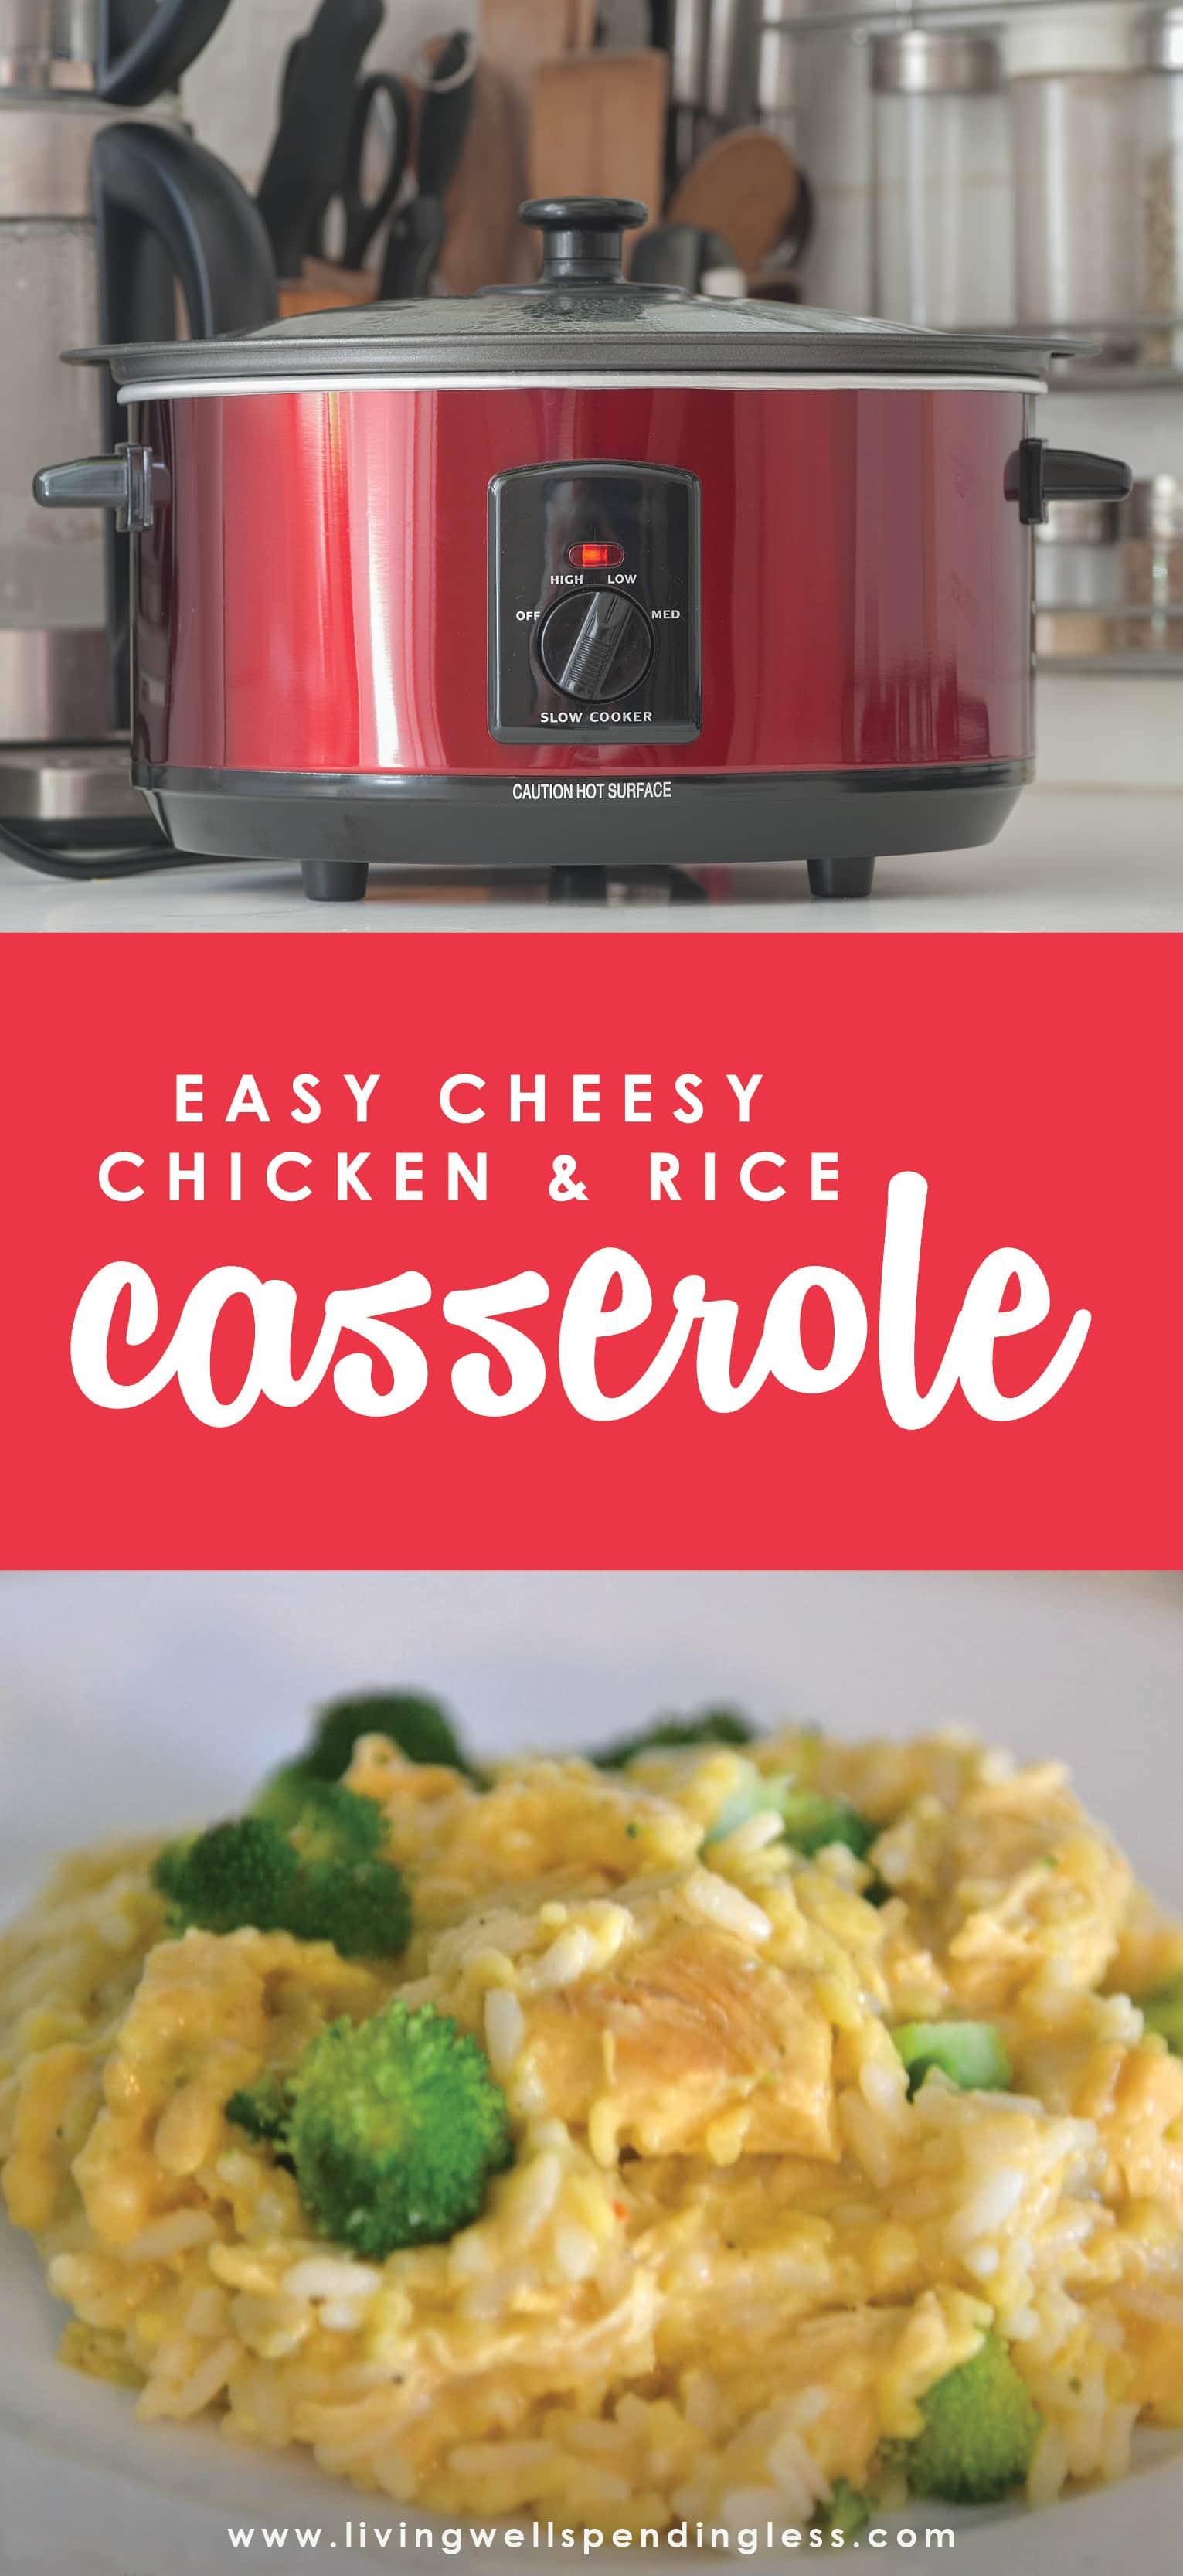 Everyone's favorite casserole is now freezer-friendly! This oh-so-yummy one-dish meal comes together in just a few minutes using pantry staples and leftover chicken (or turkey), then freezes ahead for busy weeknights. The ultimate comfort food just got better!